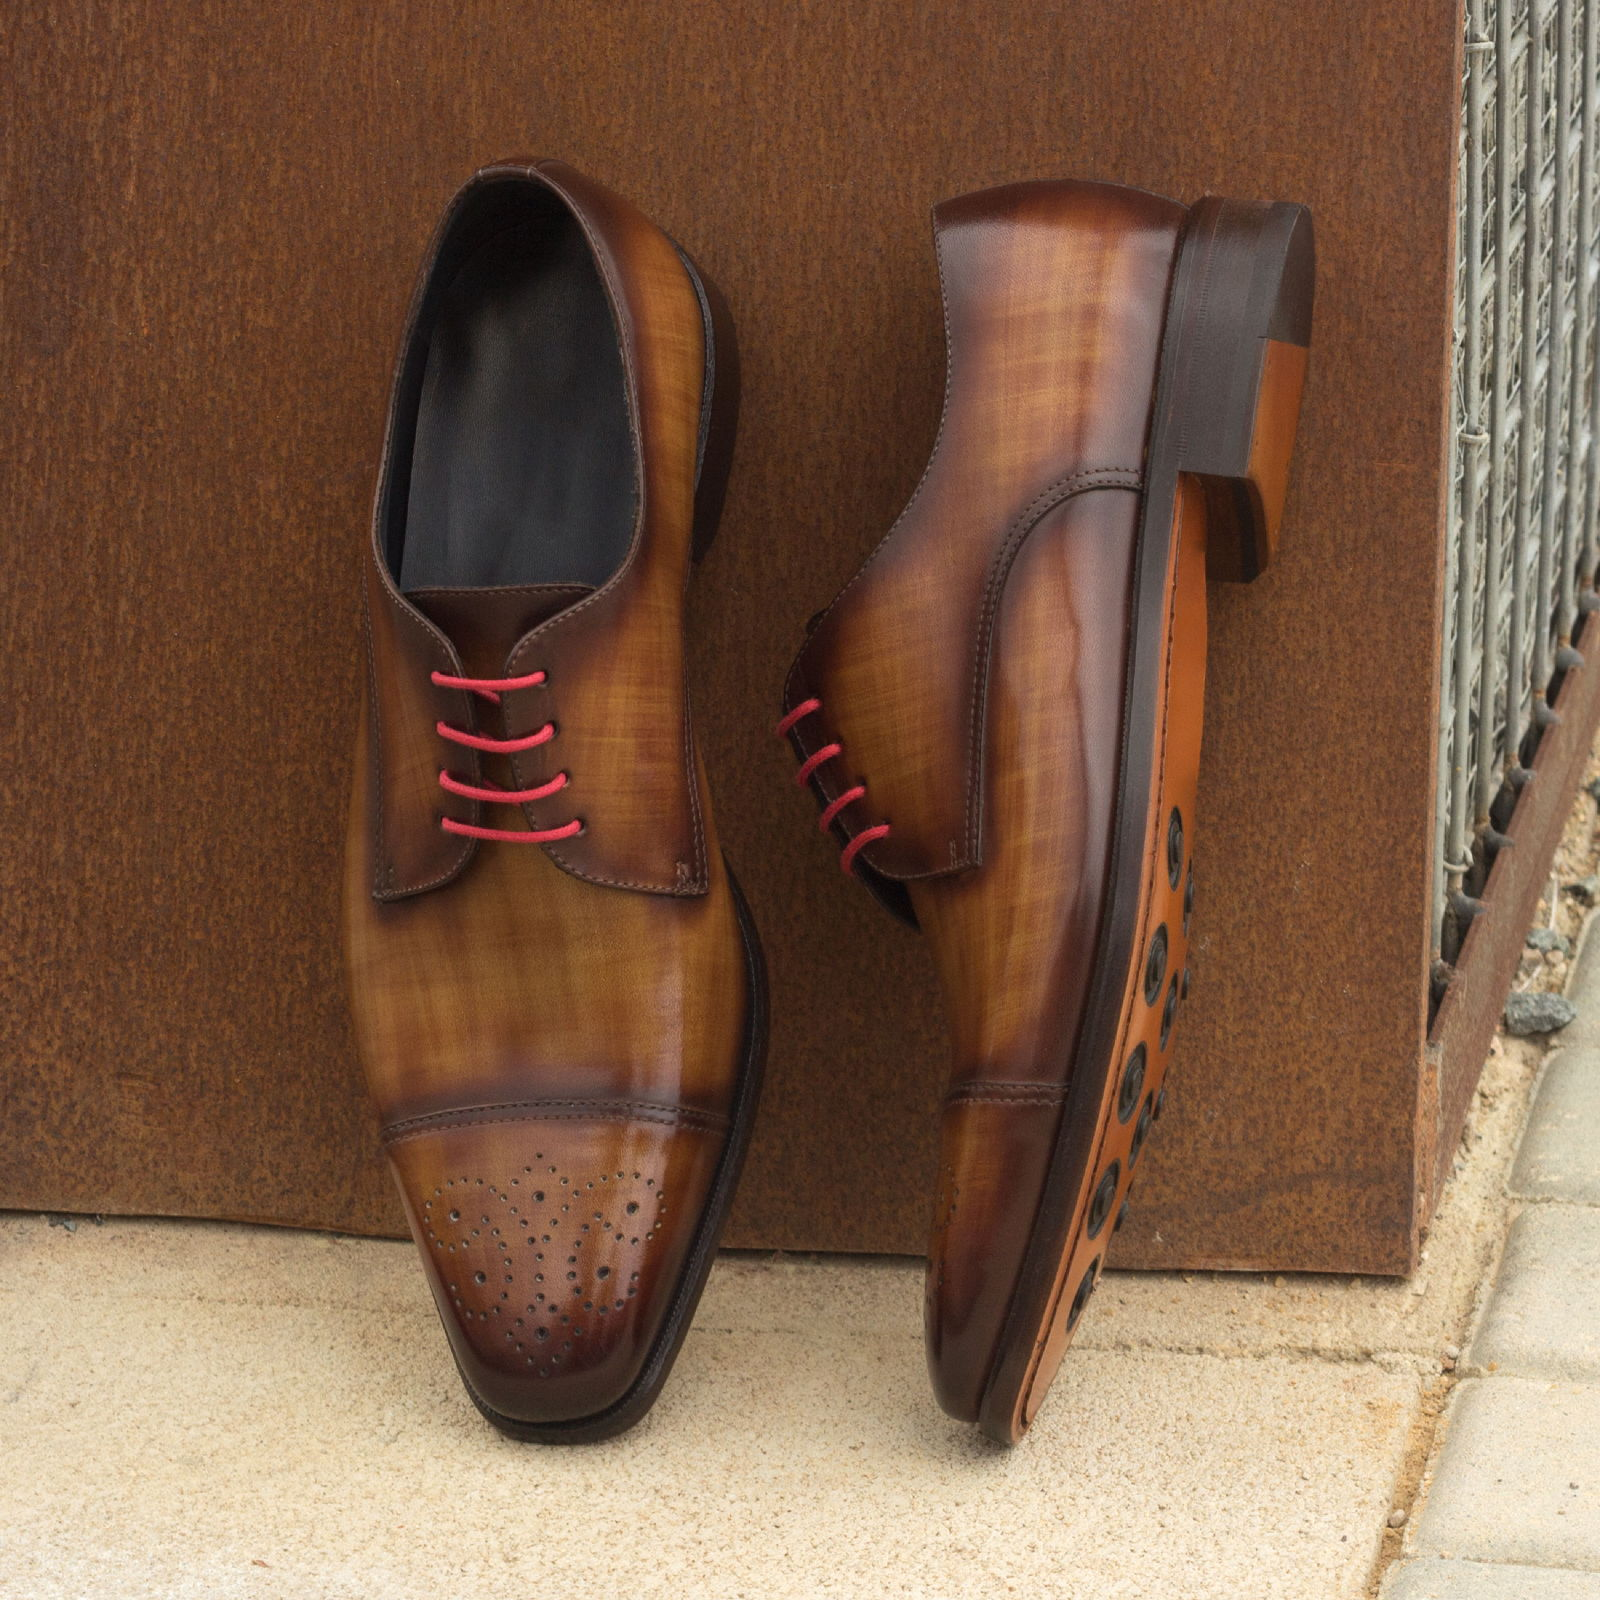 Derby cognac crust patina + brown crust patina : 330€